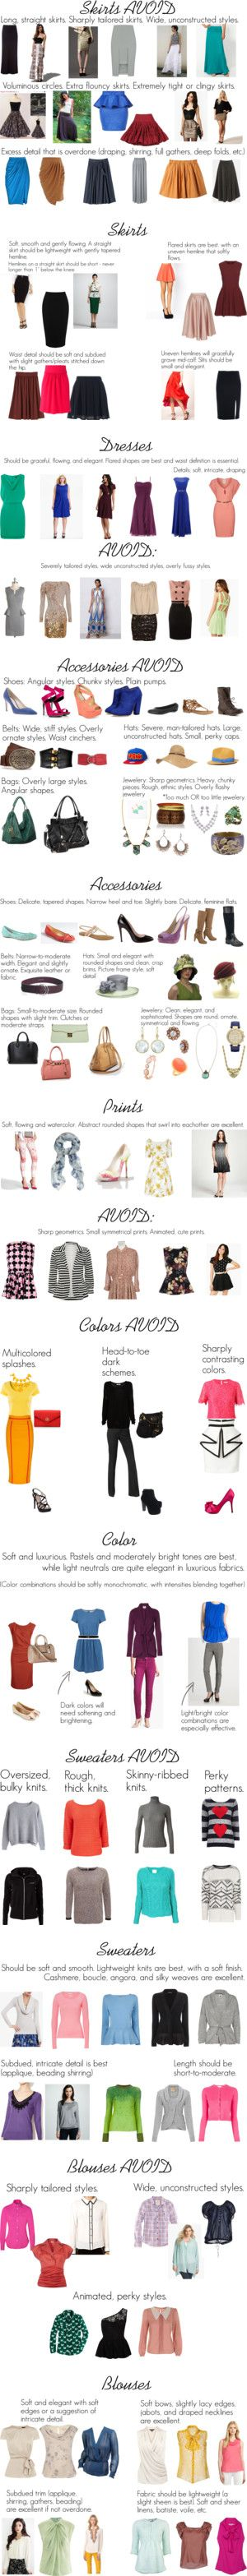 """SC Guidelines"" by oscillate on Polyvore"